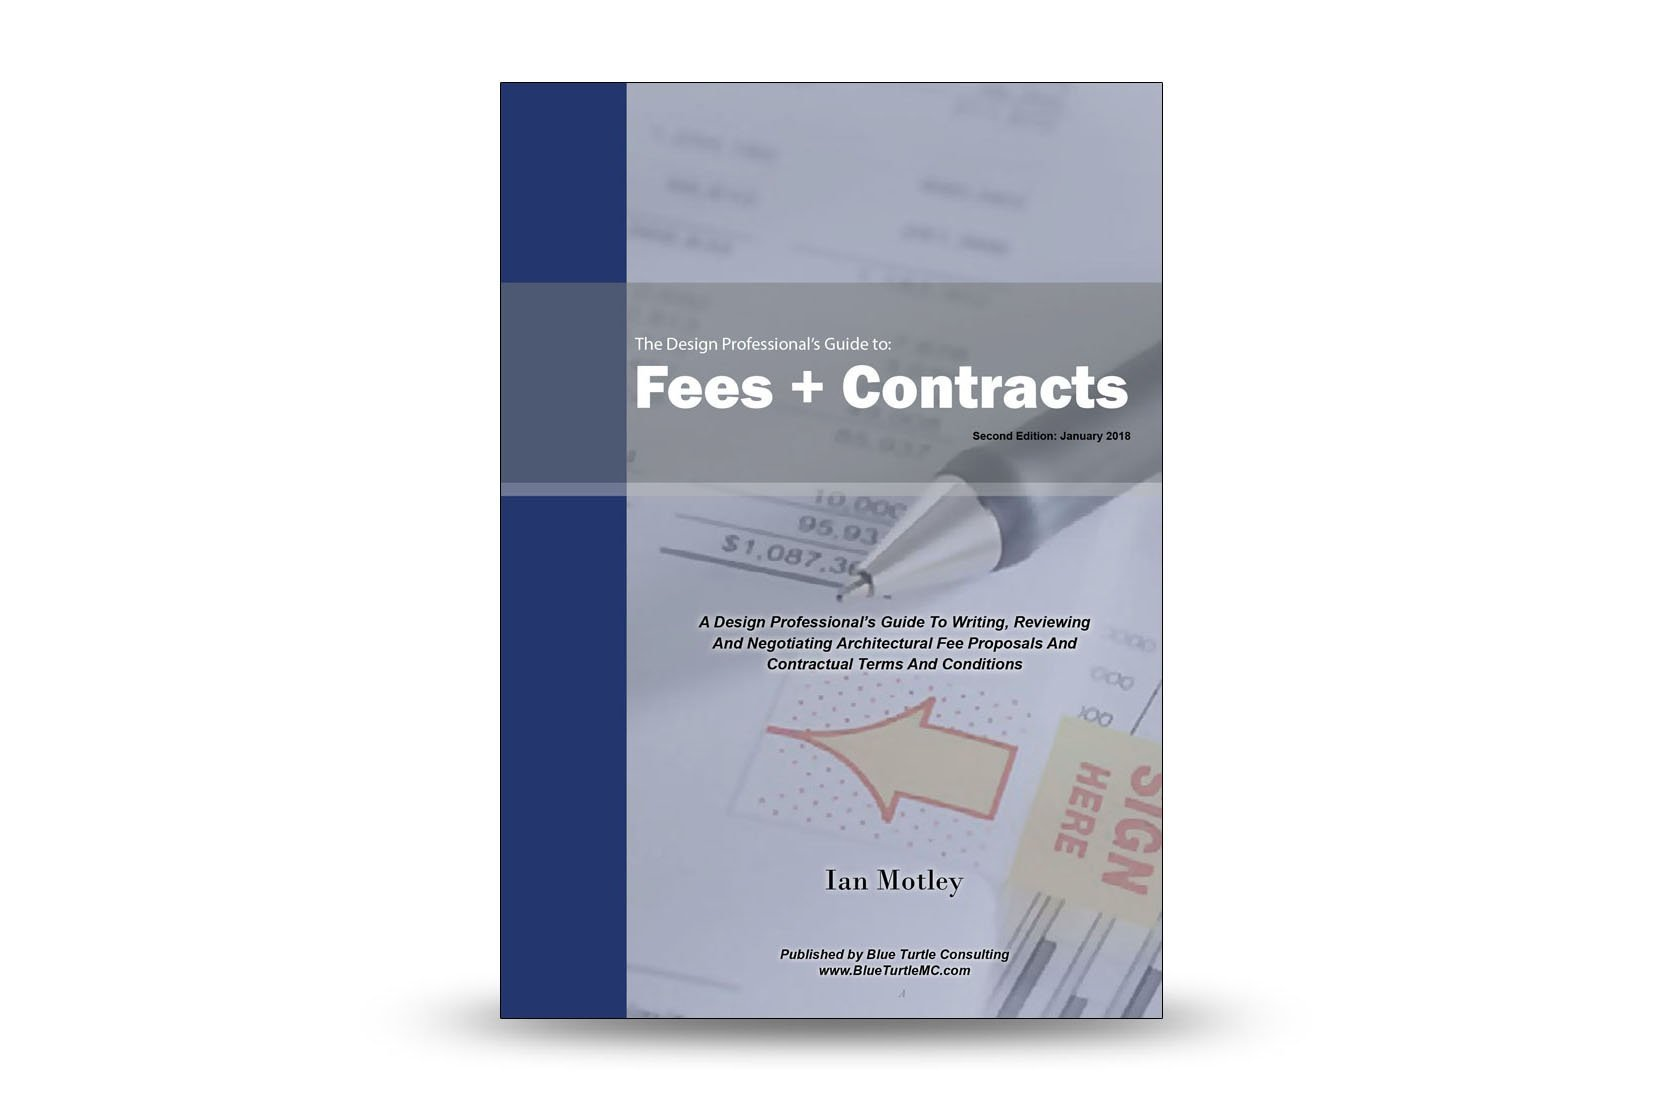 The Design Professional's Guide to Fees + Contracts